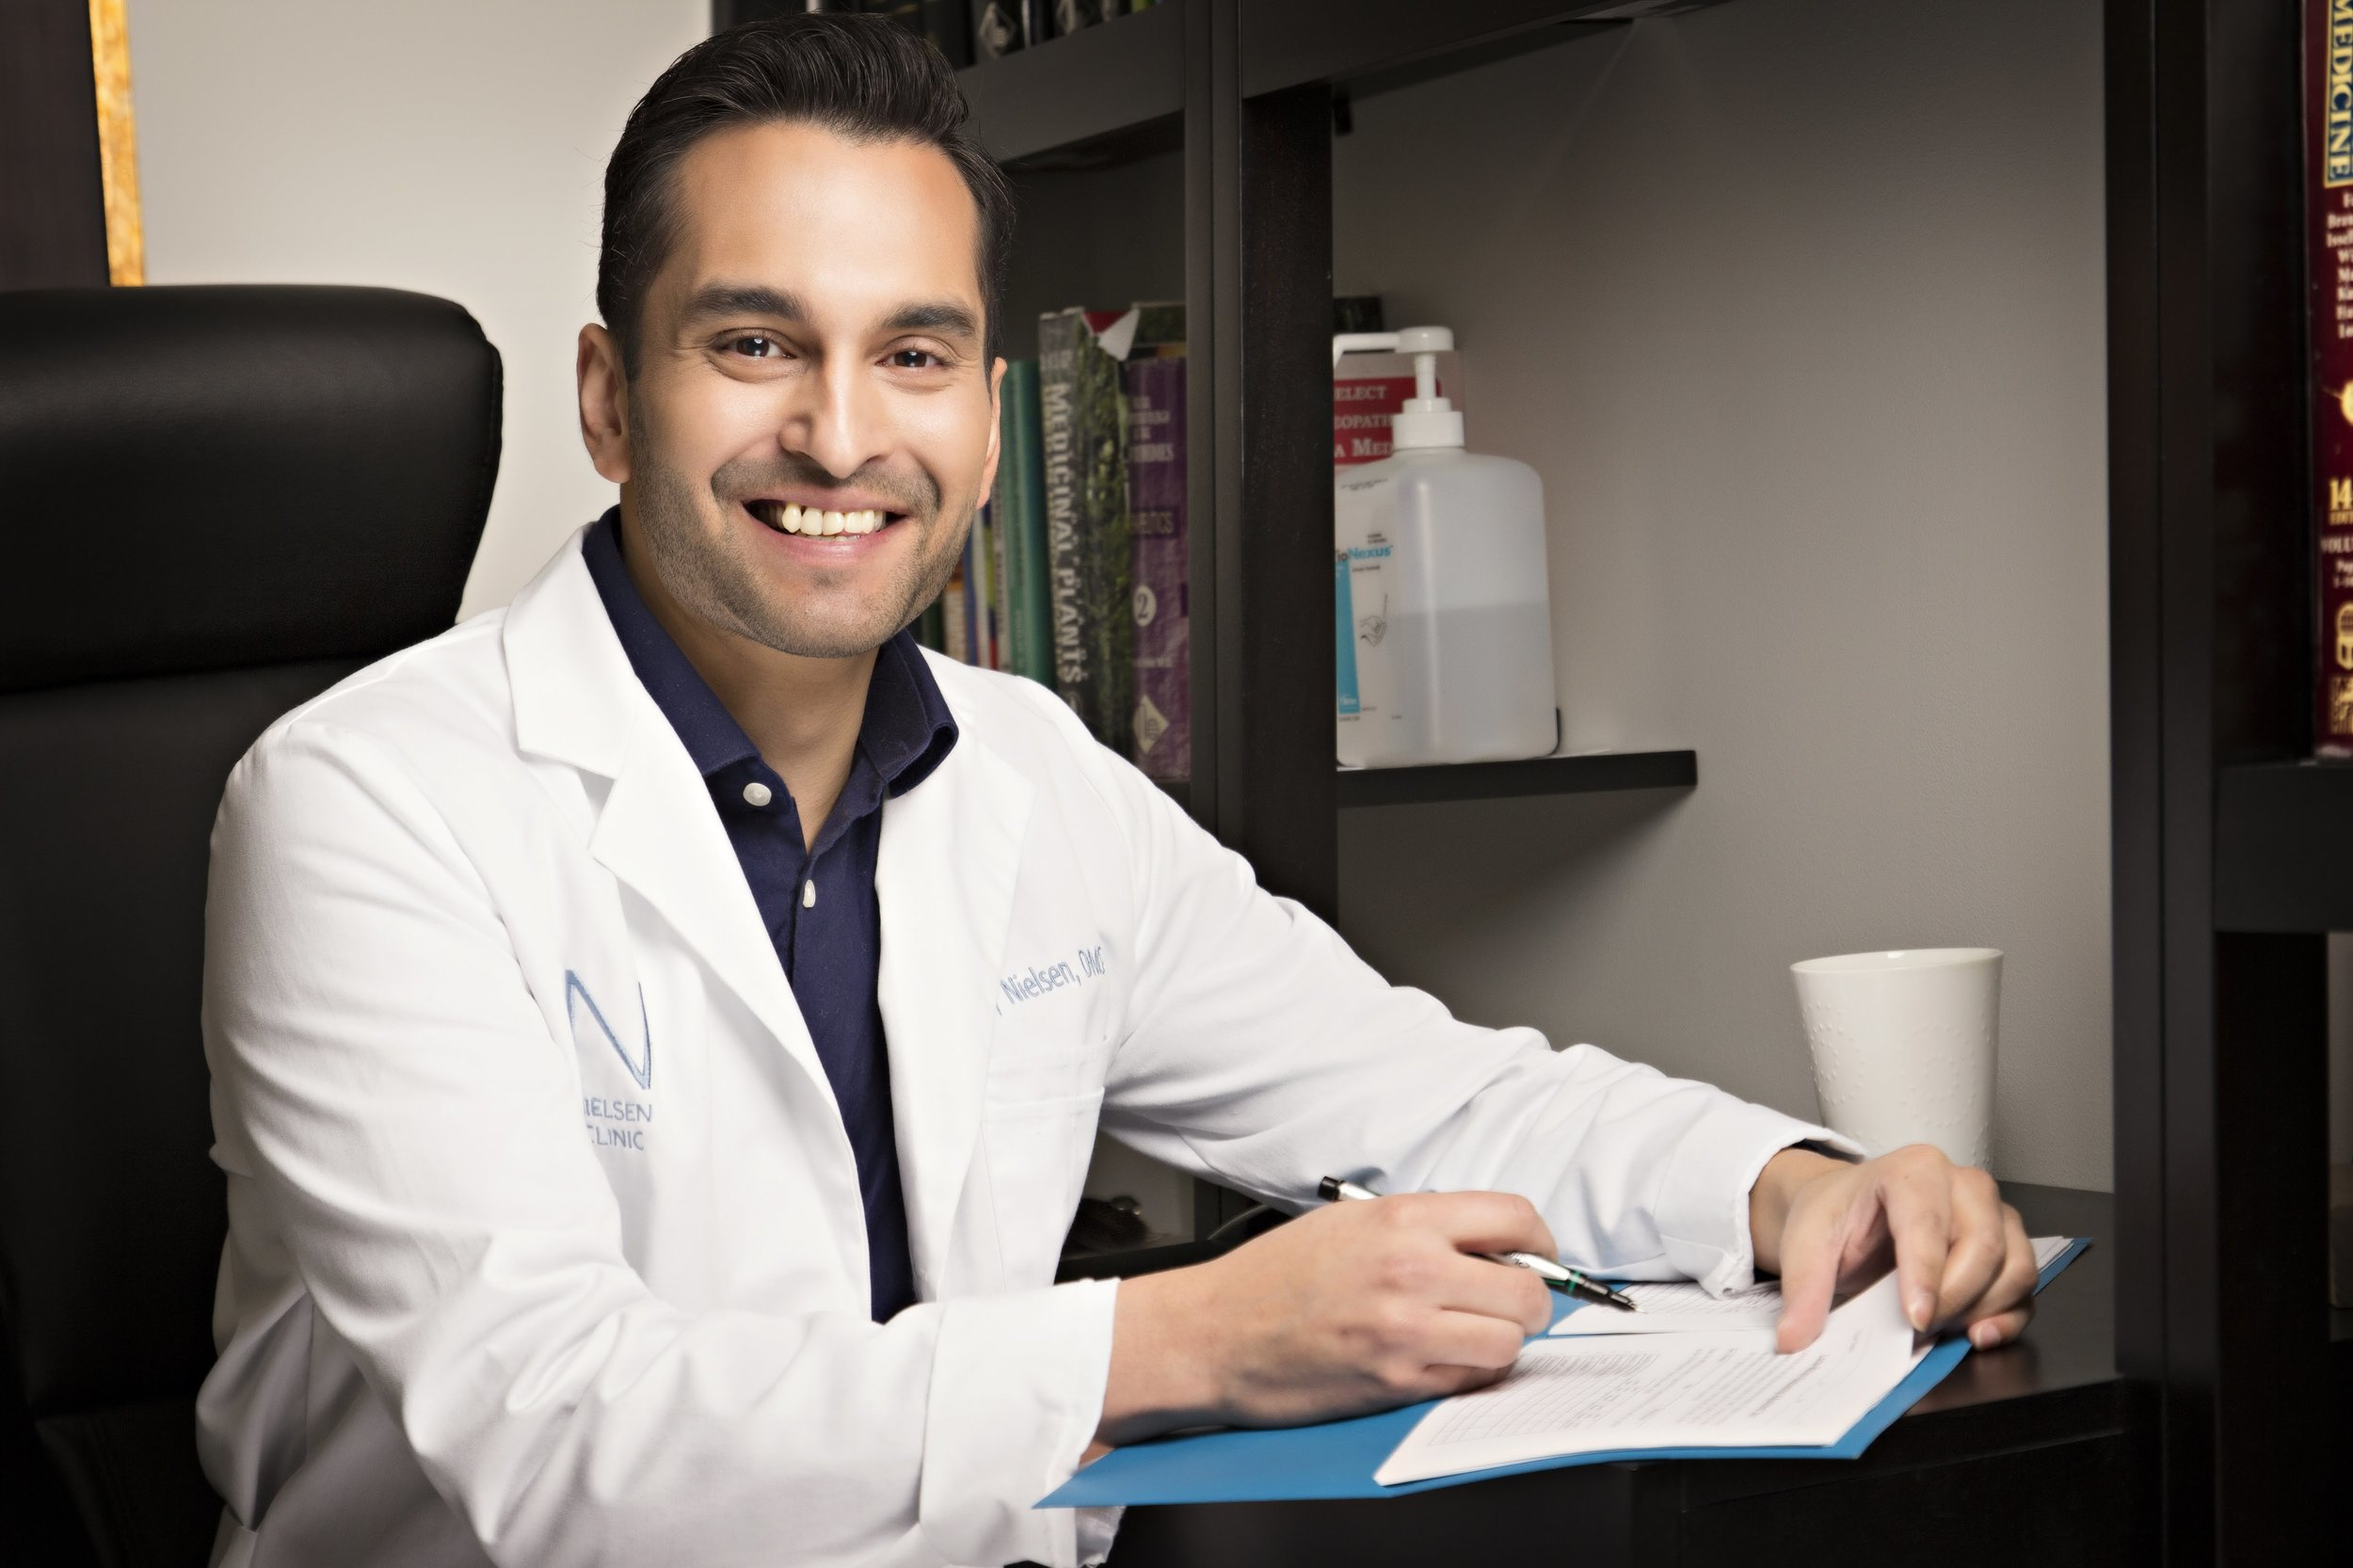 Dr. Vijay Nielsen, Homeopathic doctor